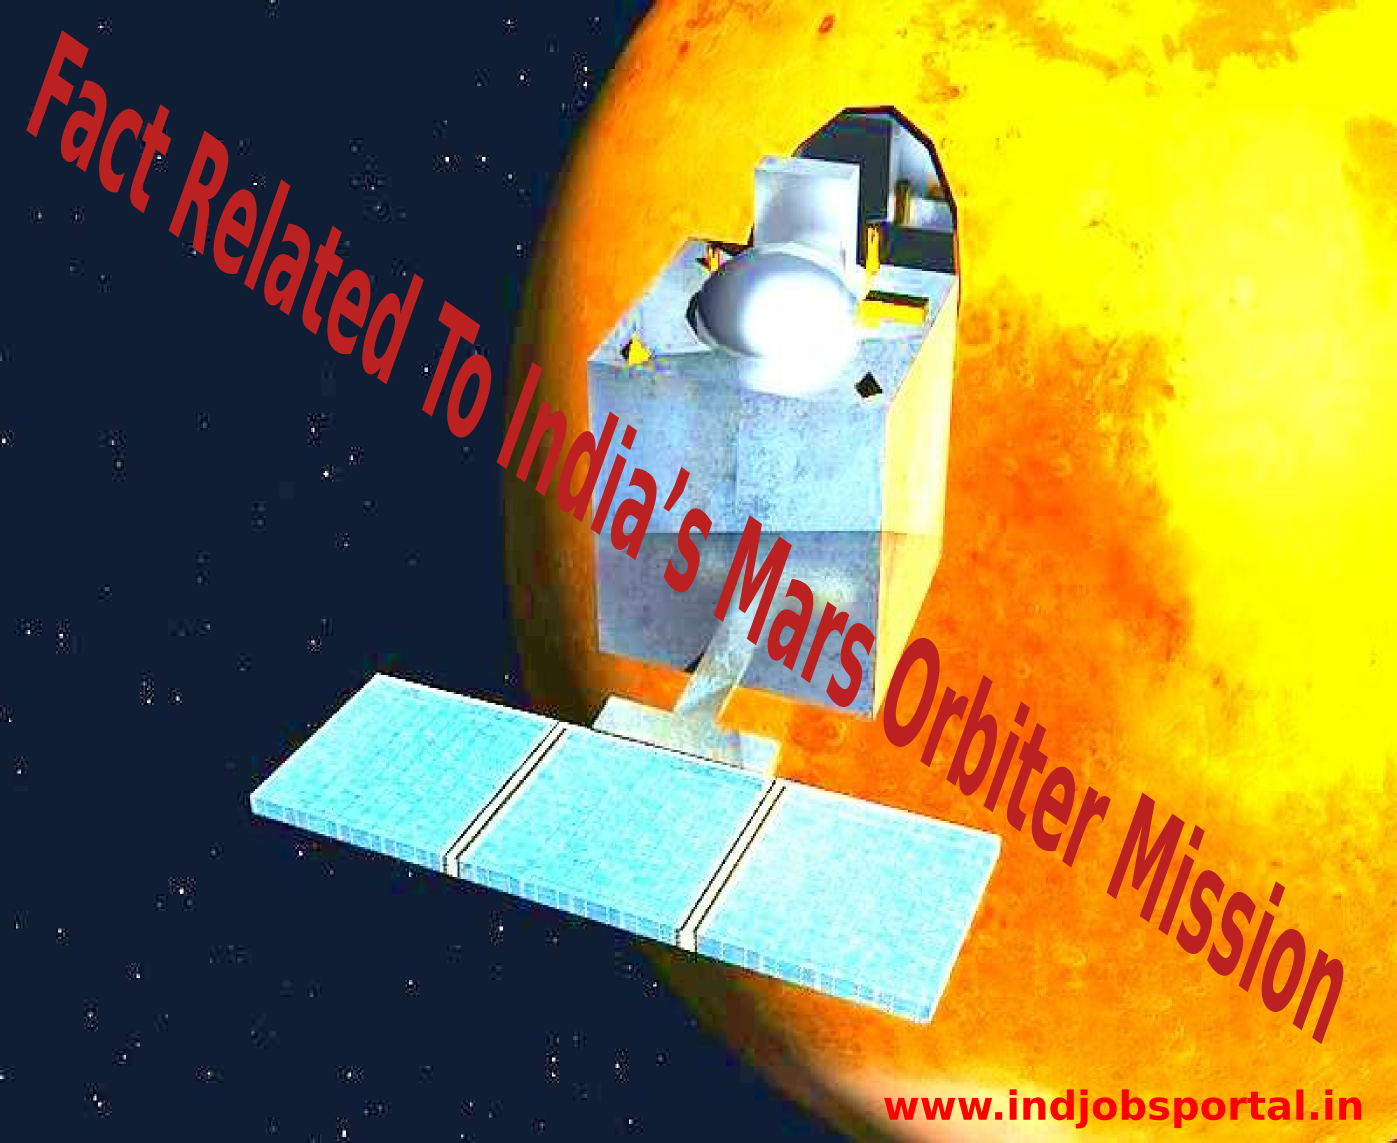 Rundown Of Some Fact Related To India's Mars Orbiter Mission Or Mangalyaan